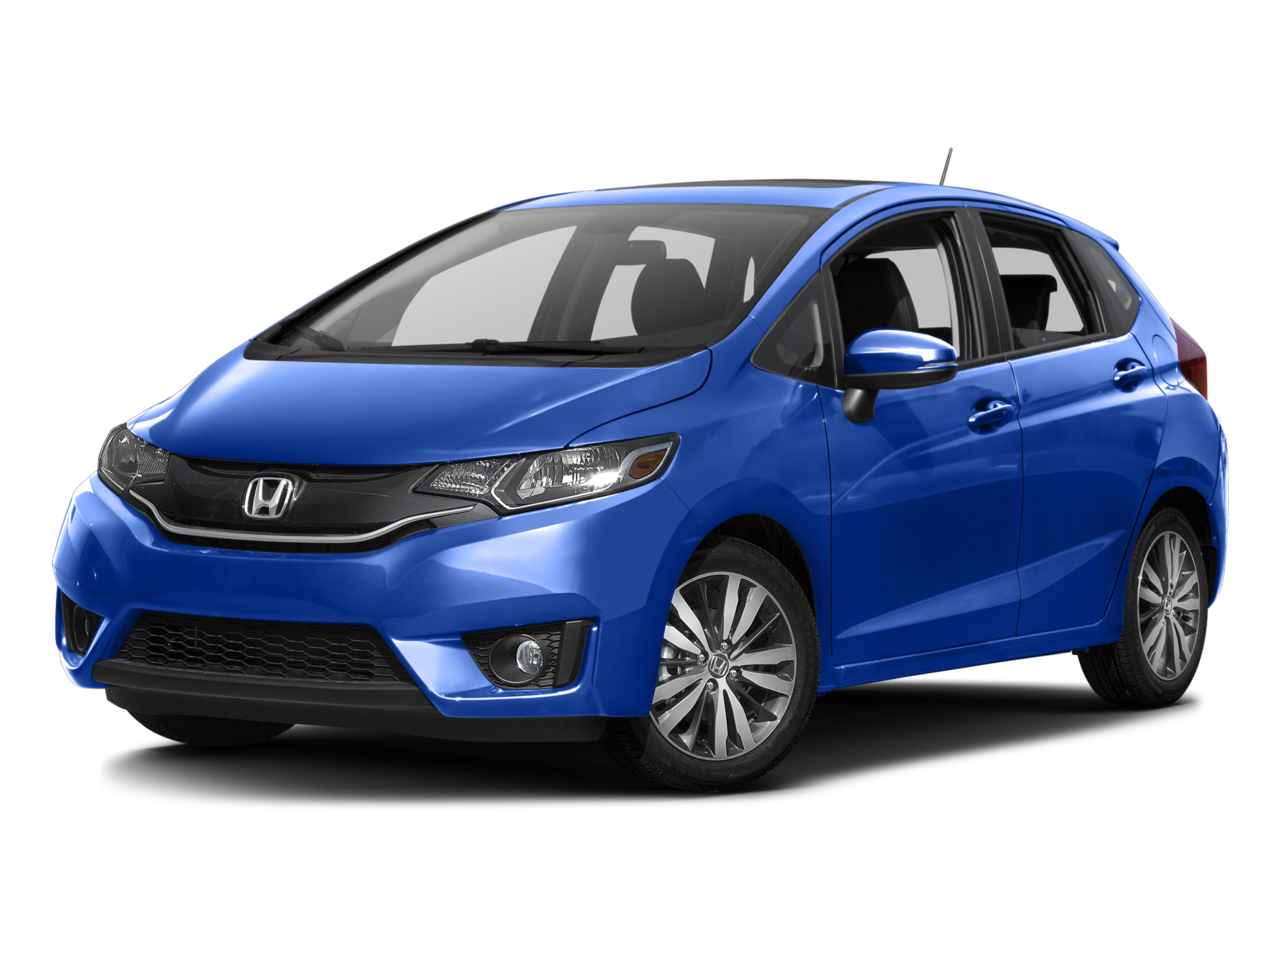 review test fit honda of drive expert